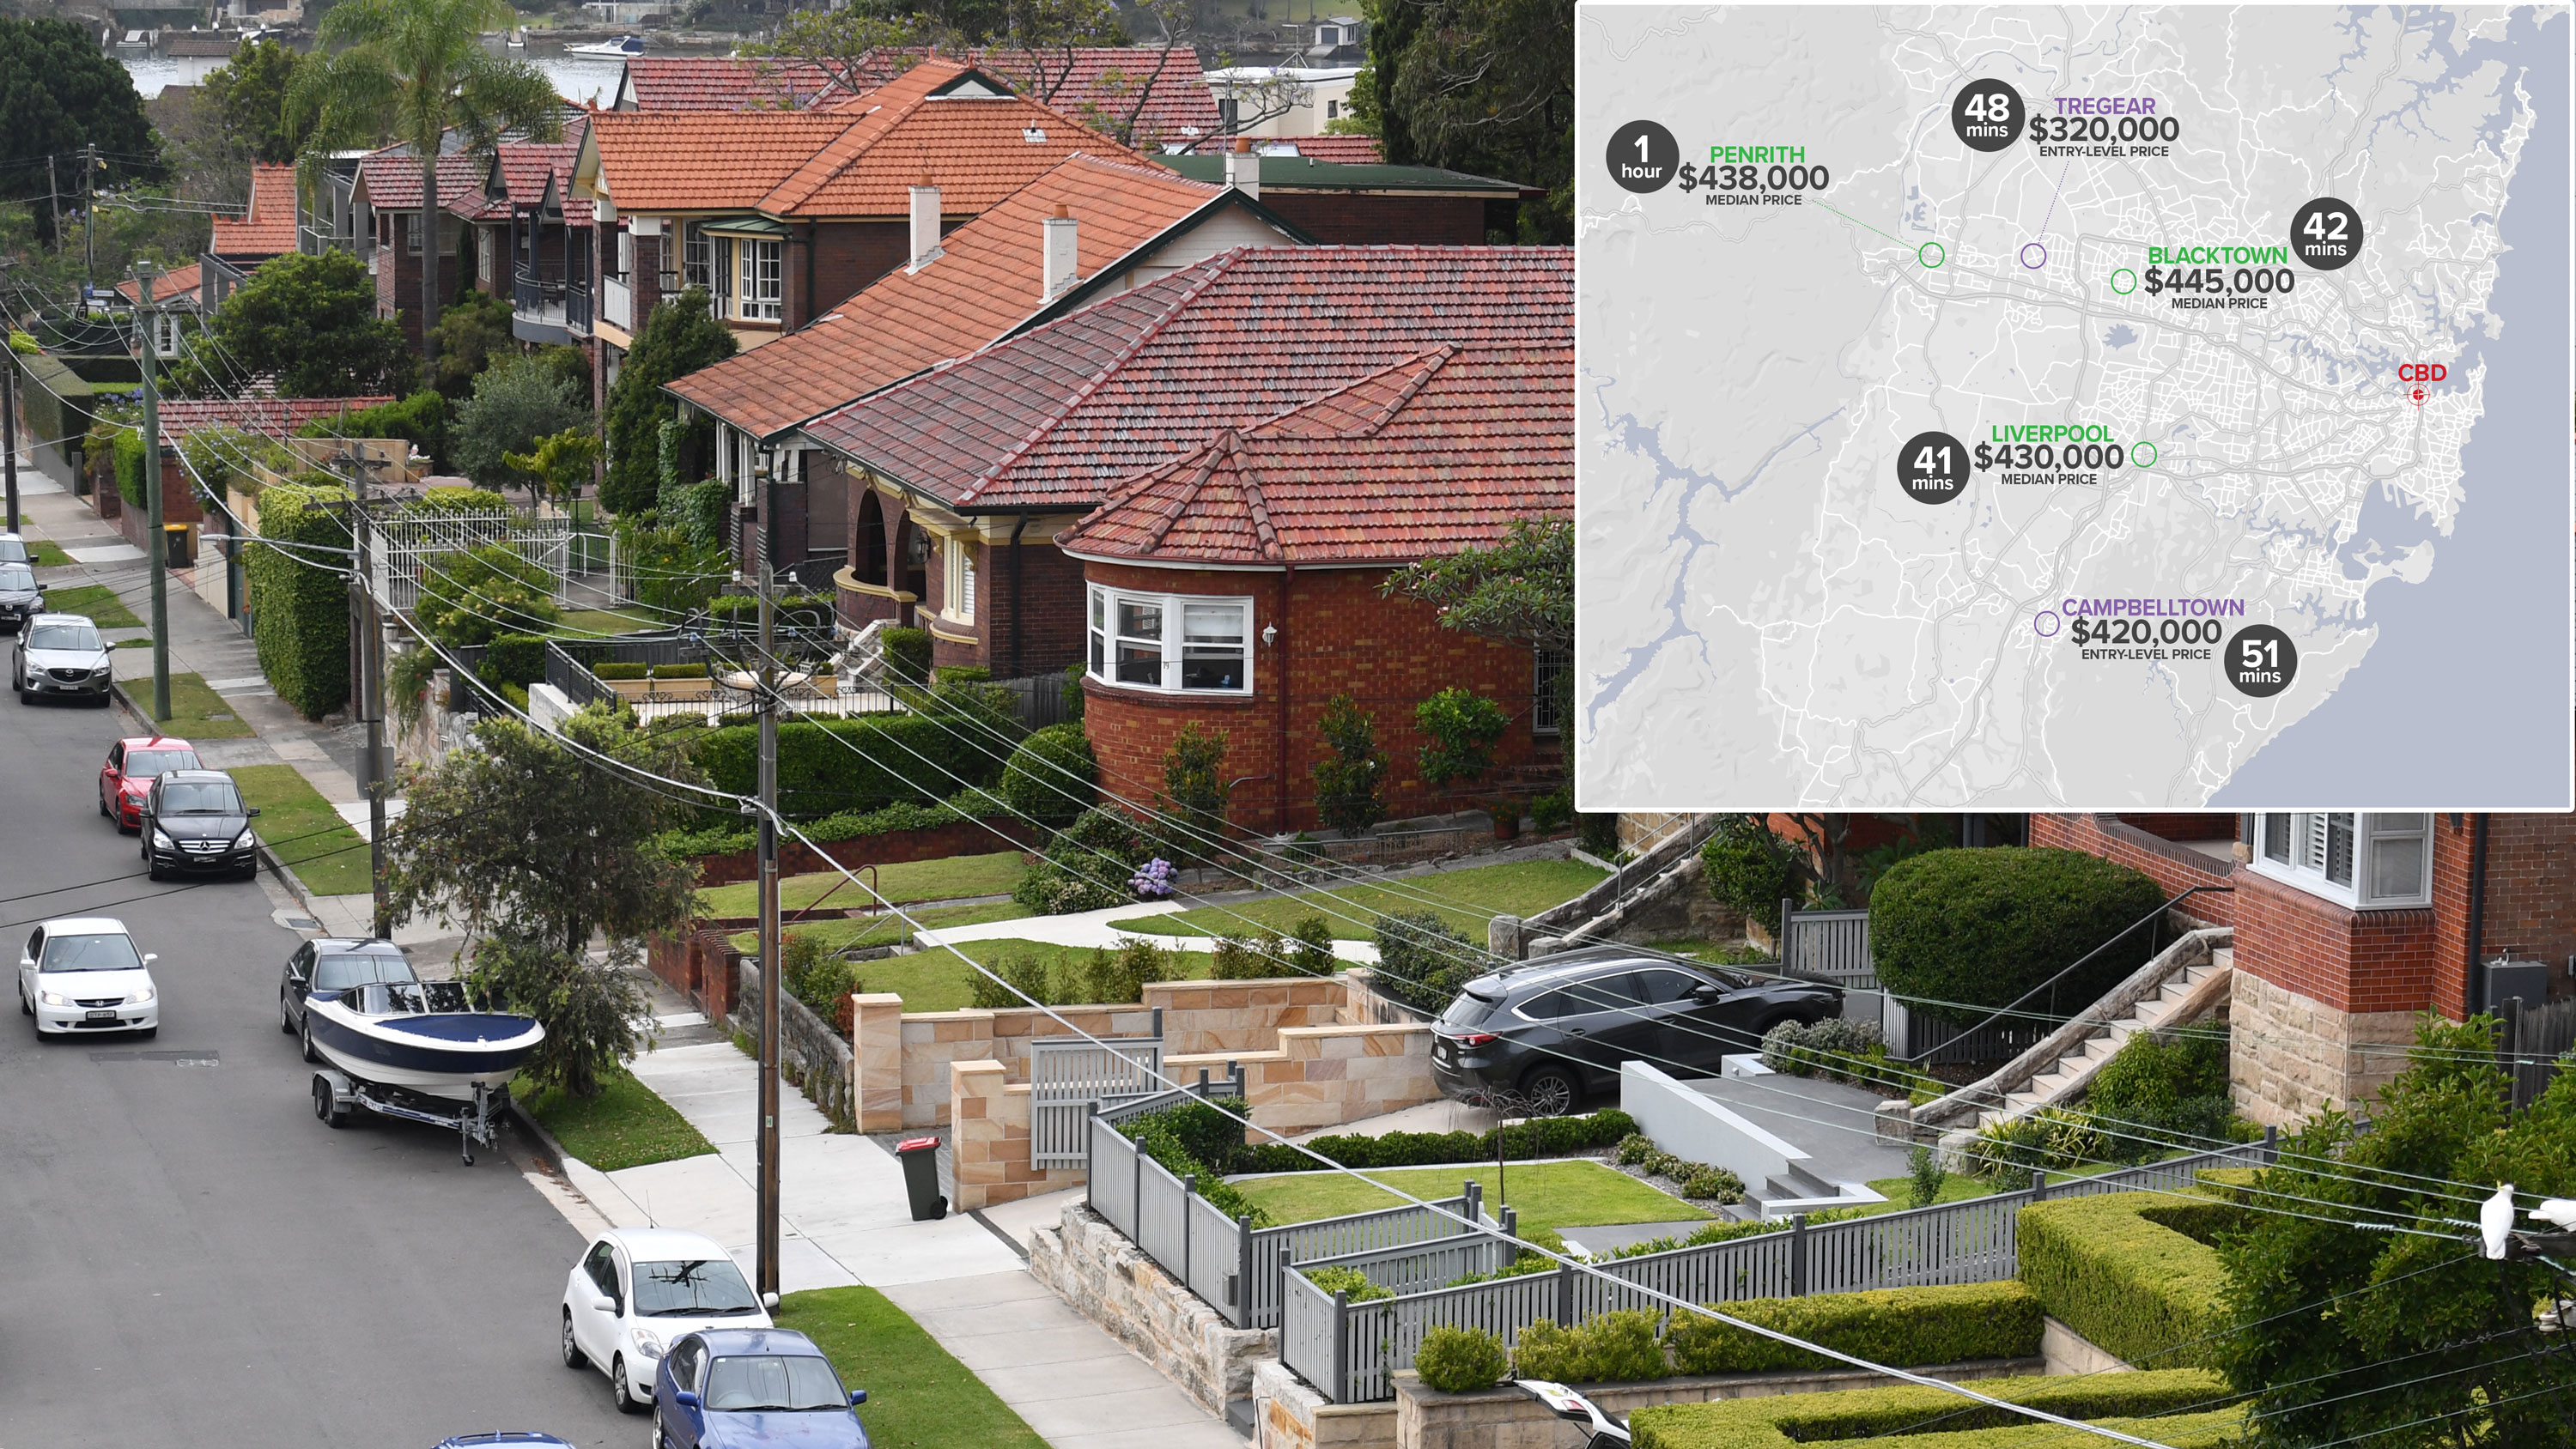 Housing property market in Australia